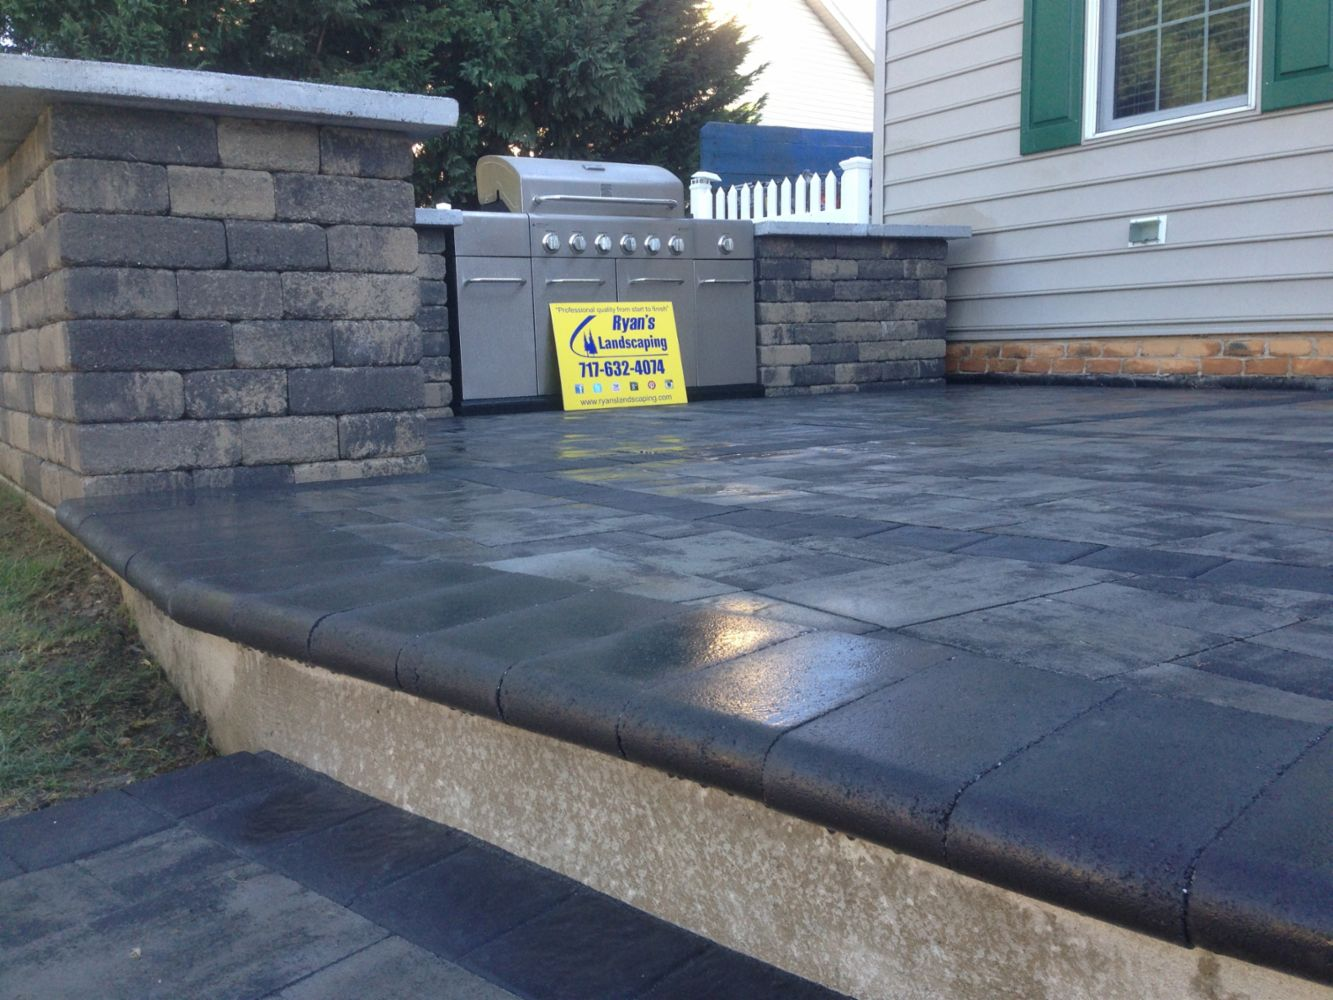 Professional Landscape and Hardscape Construction in Hanover, PA - Ryan's  Landscaping - Professional Landscape And Hardscape Construction In Hanover, PA